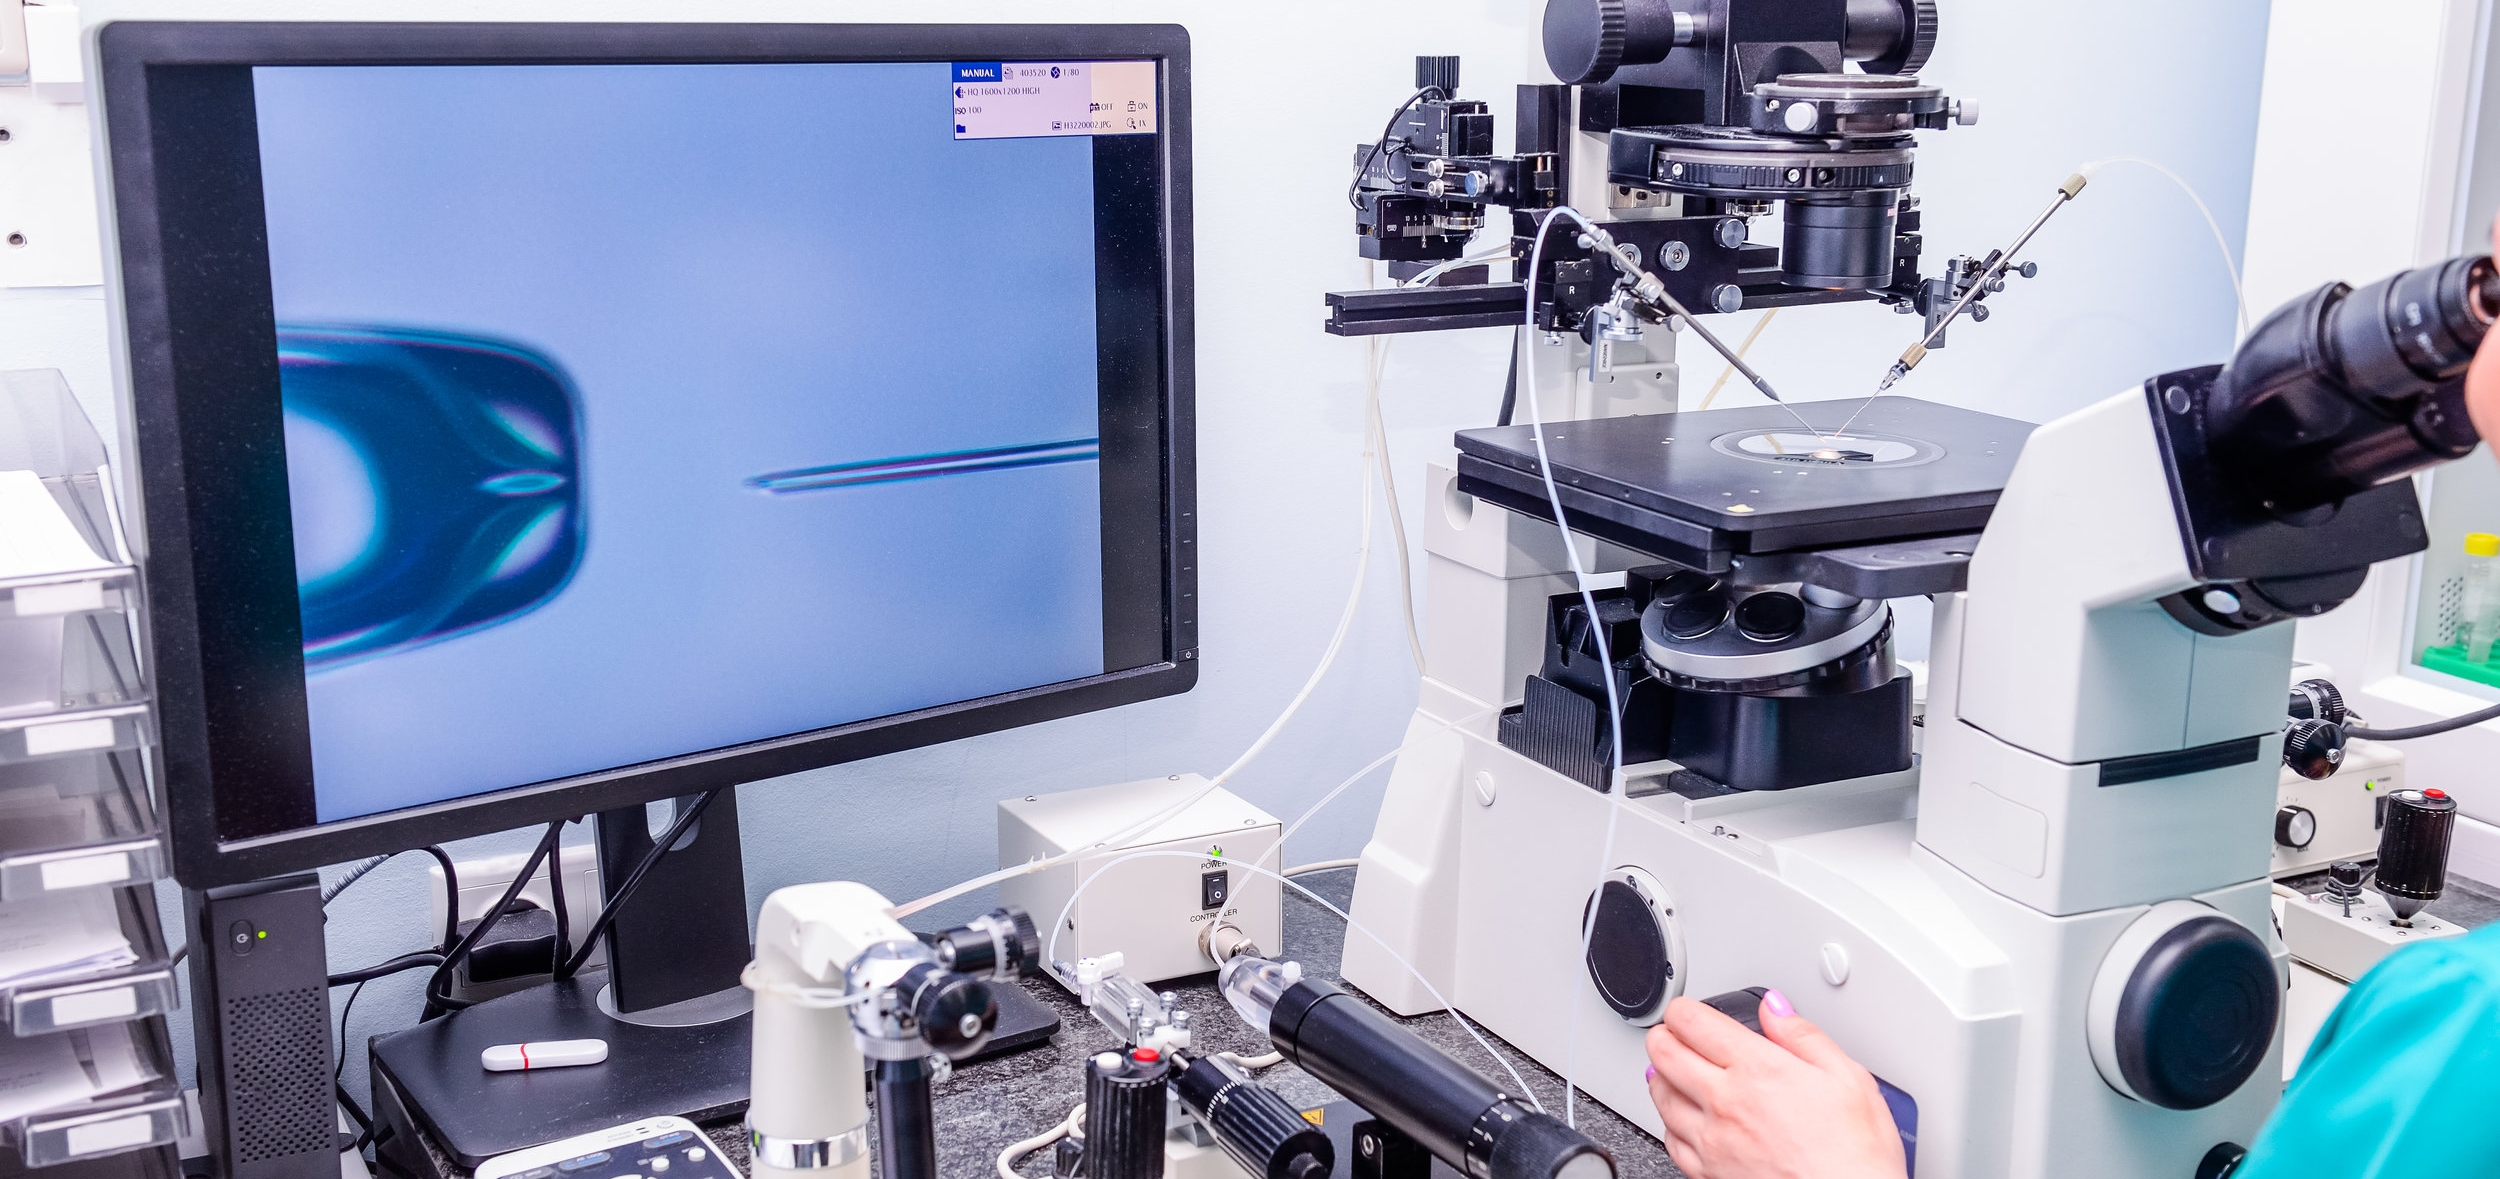 Laboratory Solutions - MedTech Laboratory Solutions specializes in helping ART/IVF providers of all sizes in the US and internationally. Our team of renowned leaders provide practical solutions and improved laboratory outcomes.